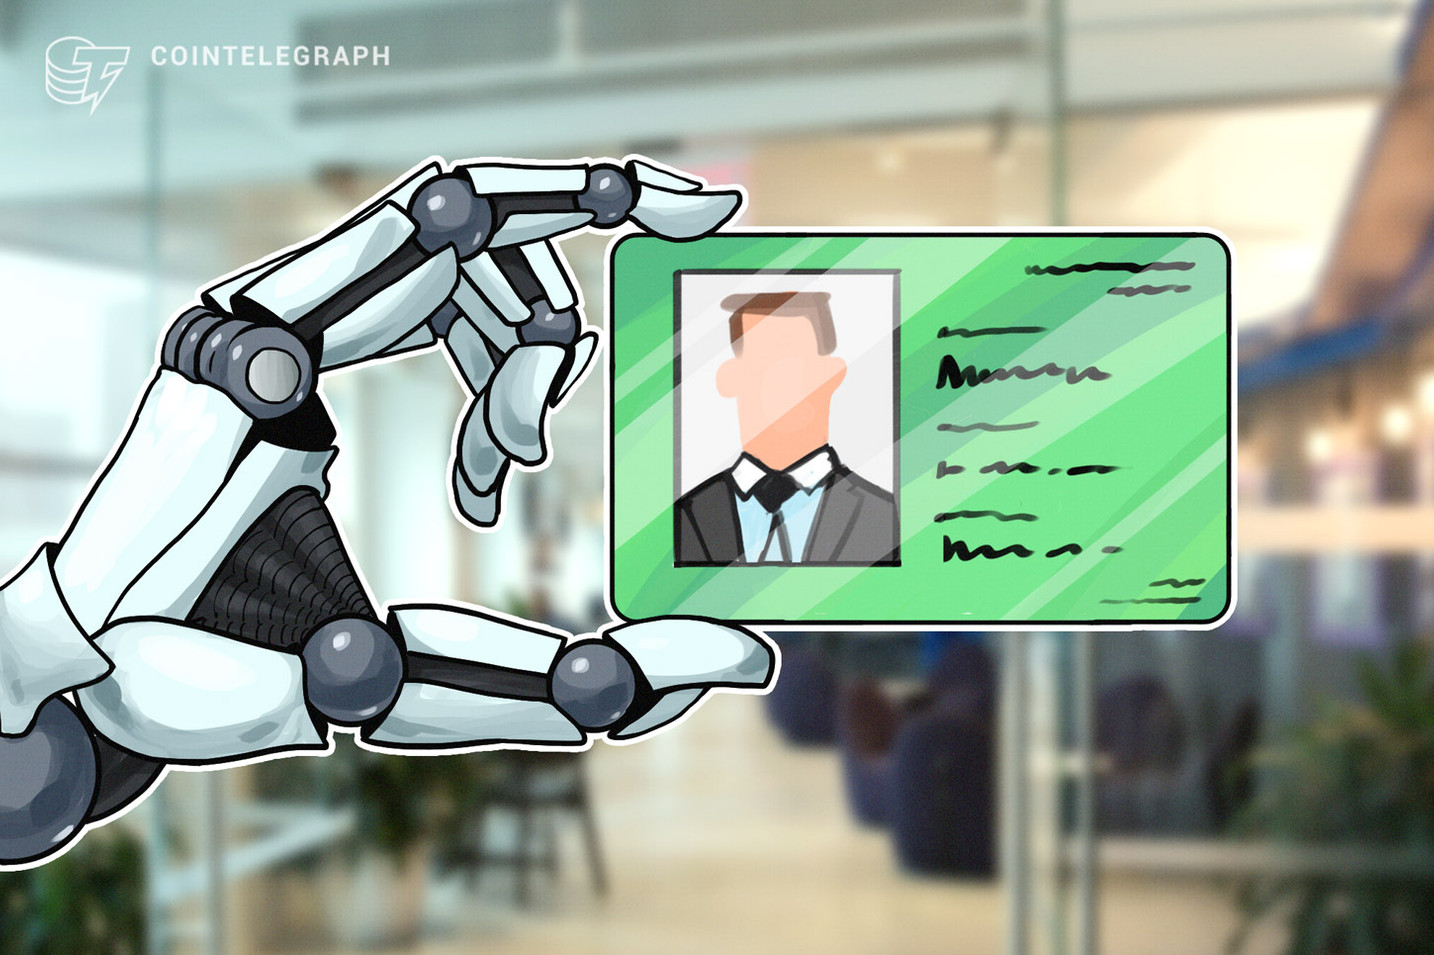 Telegram Reveals Personal ID Verification Tool for Sharing Data with 'Finance, ICOs'